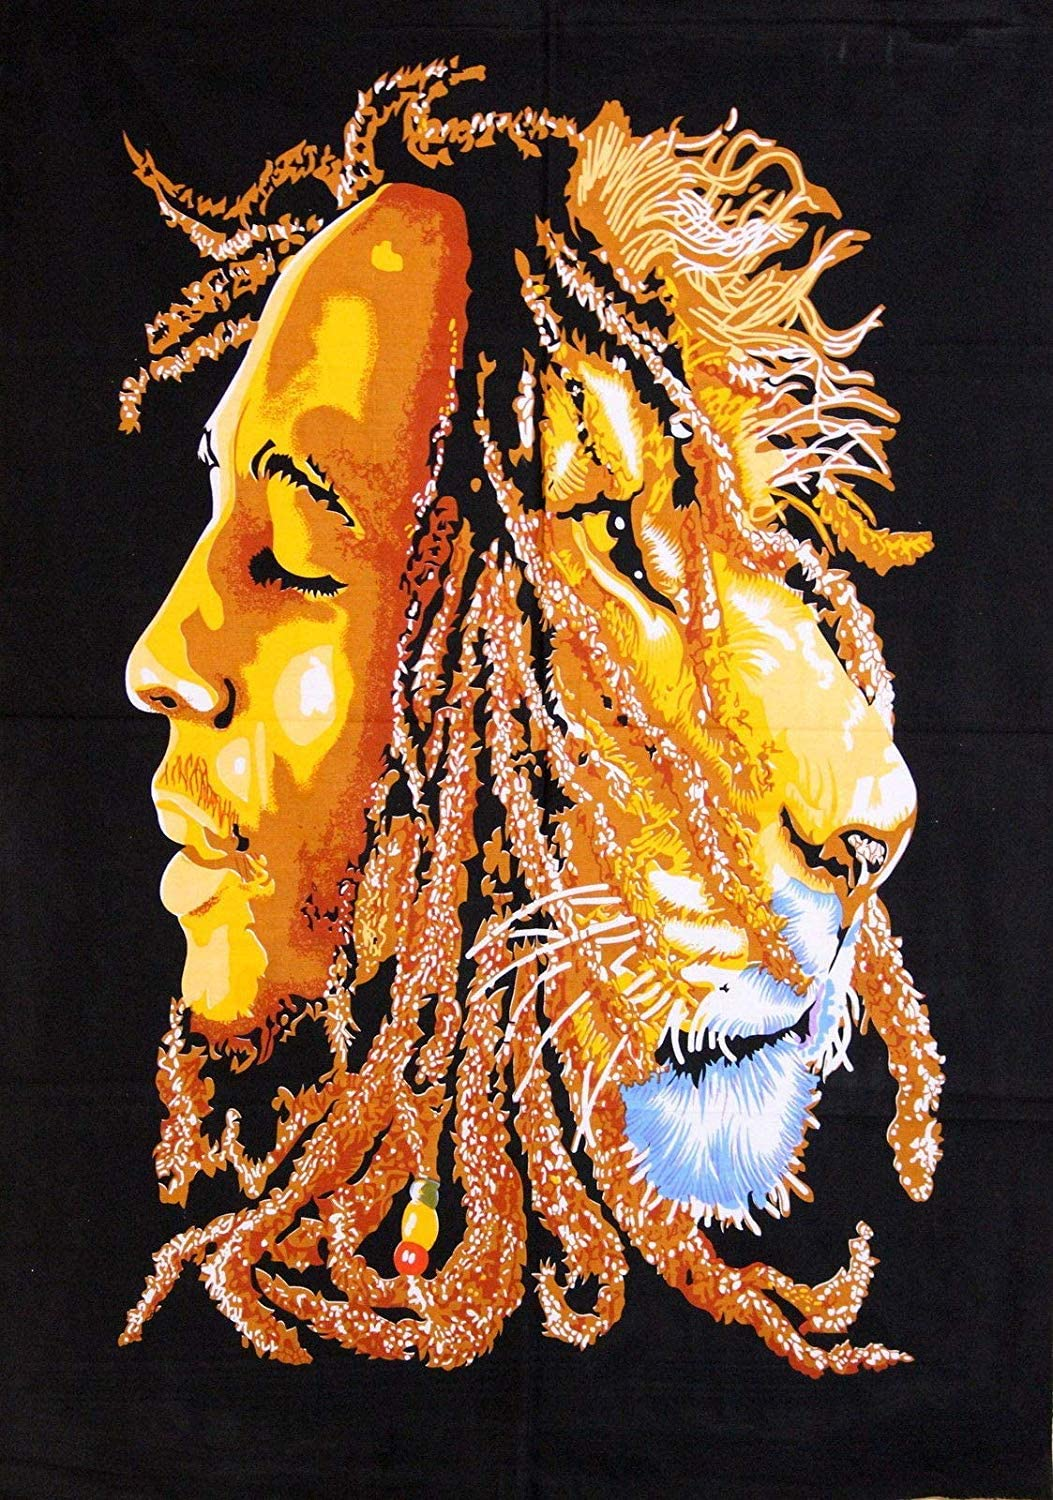 Craft N Copper Wall Hangings Poster 40 x 30 inches for Home Decoration & Wall Decoration (Lion-Bob Marley Black)